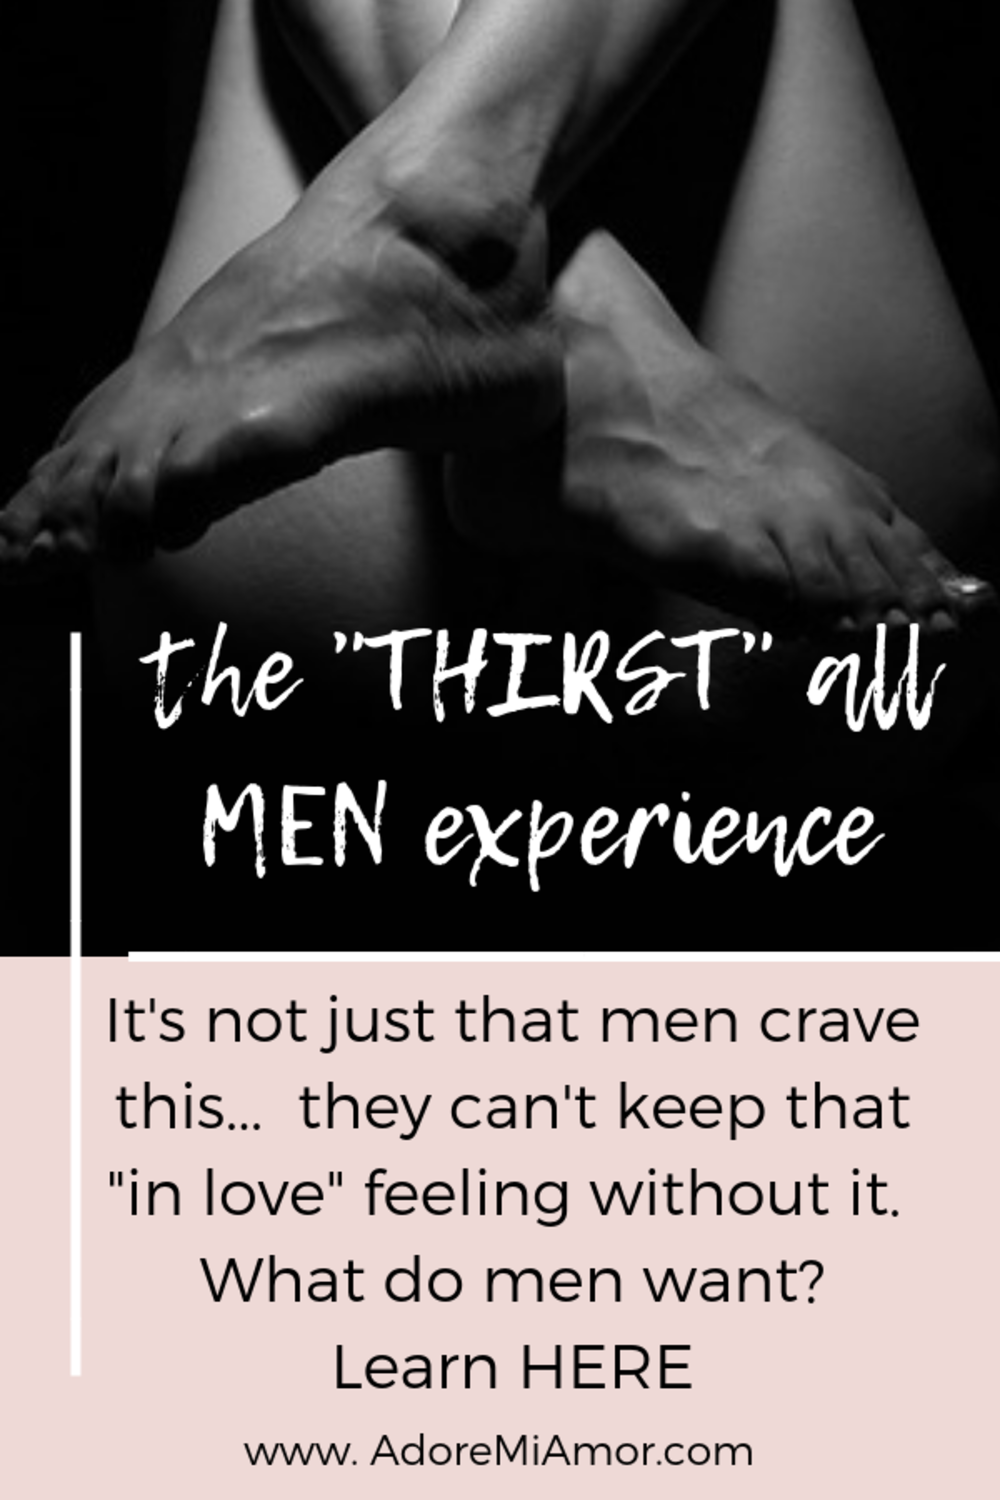 It's not just that men crave this - he can't sustain that